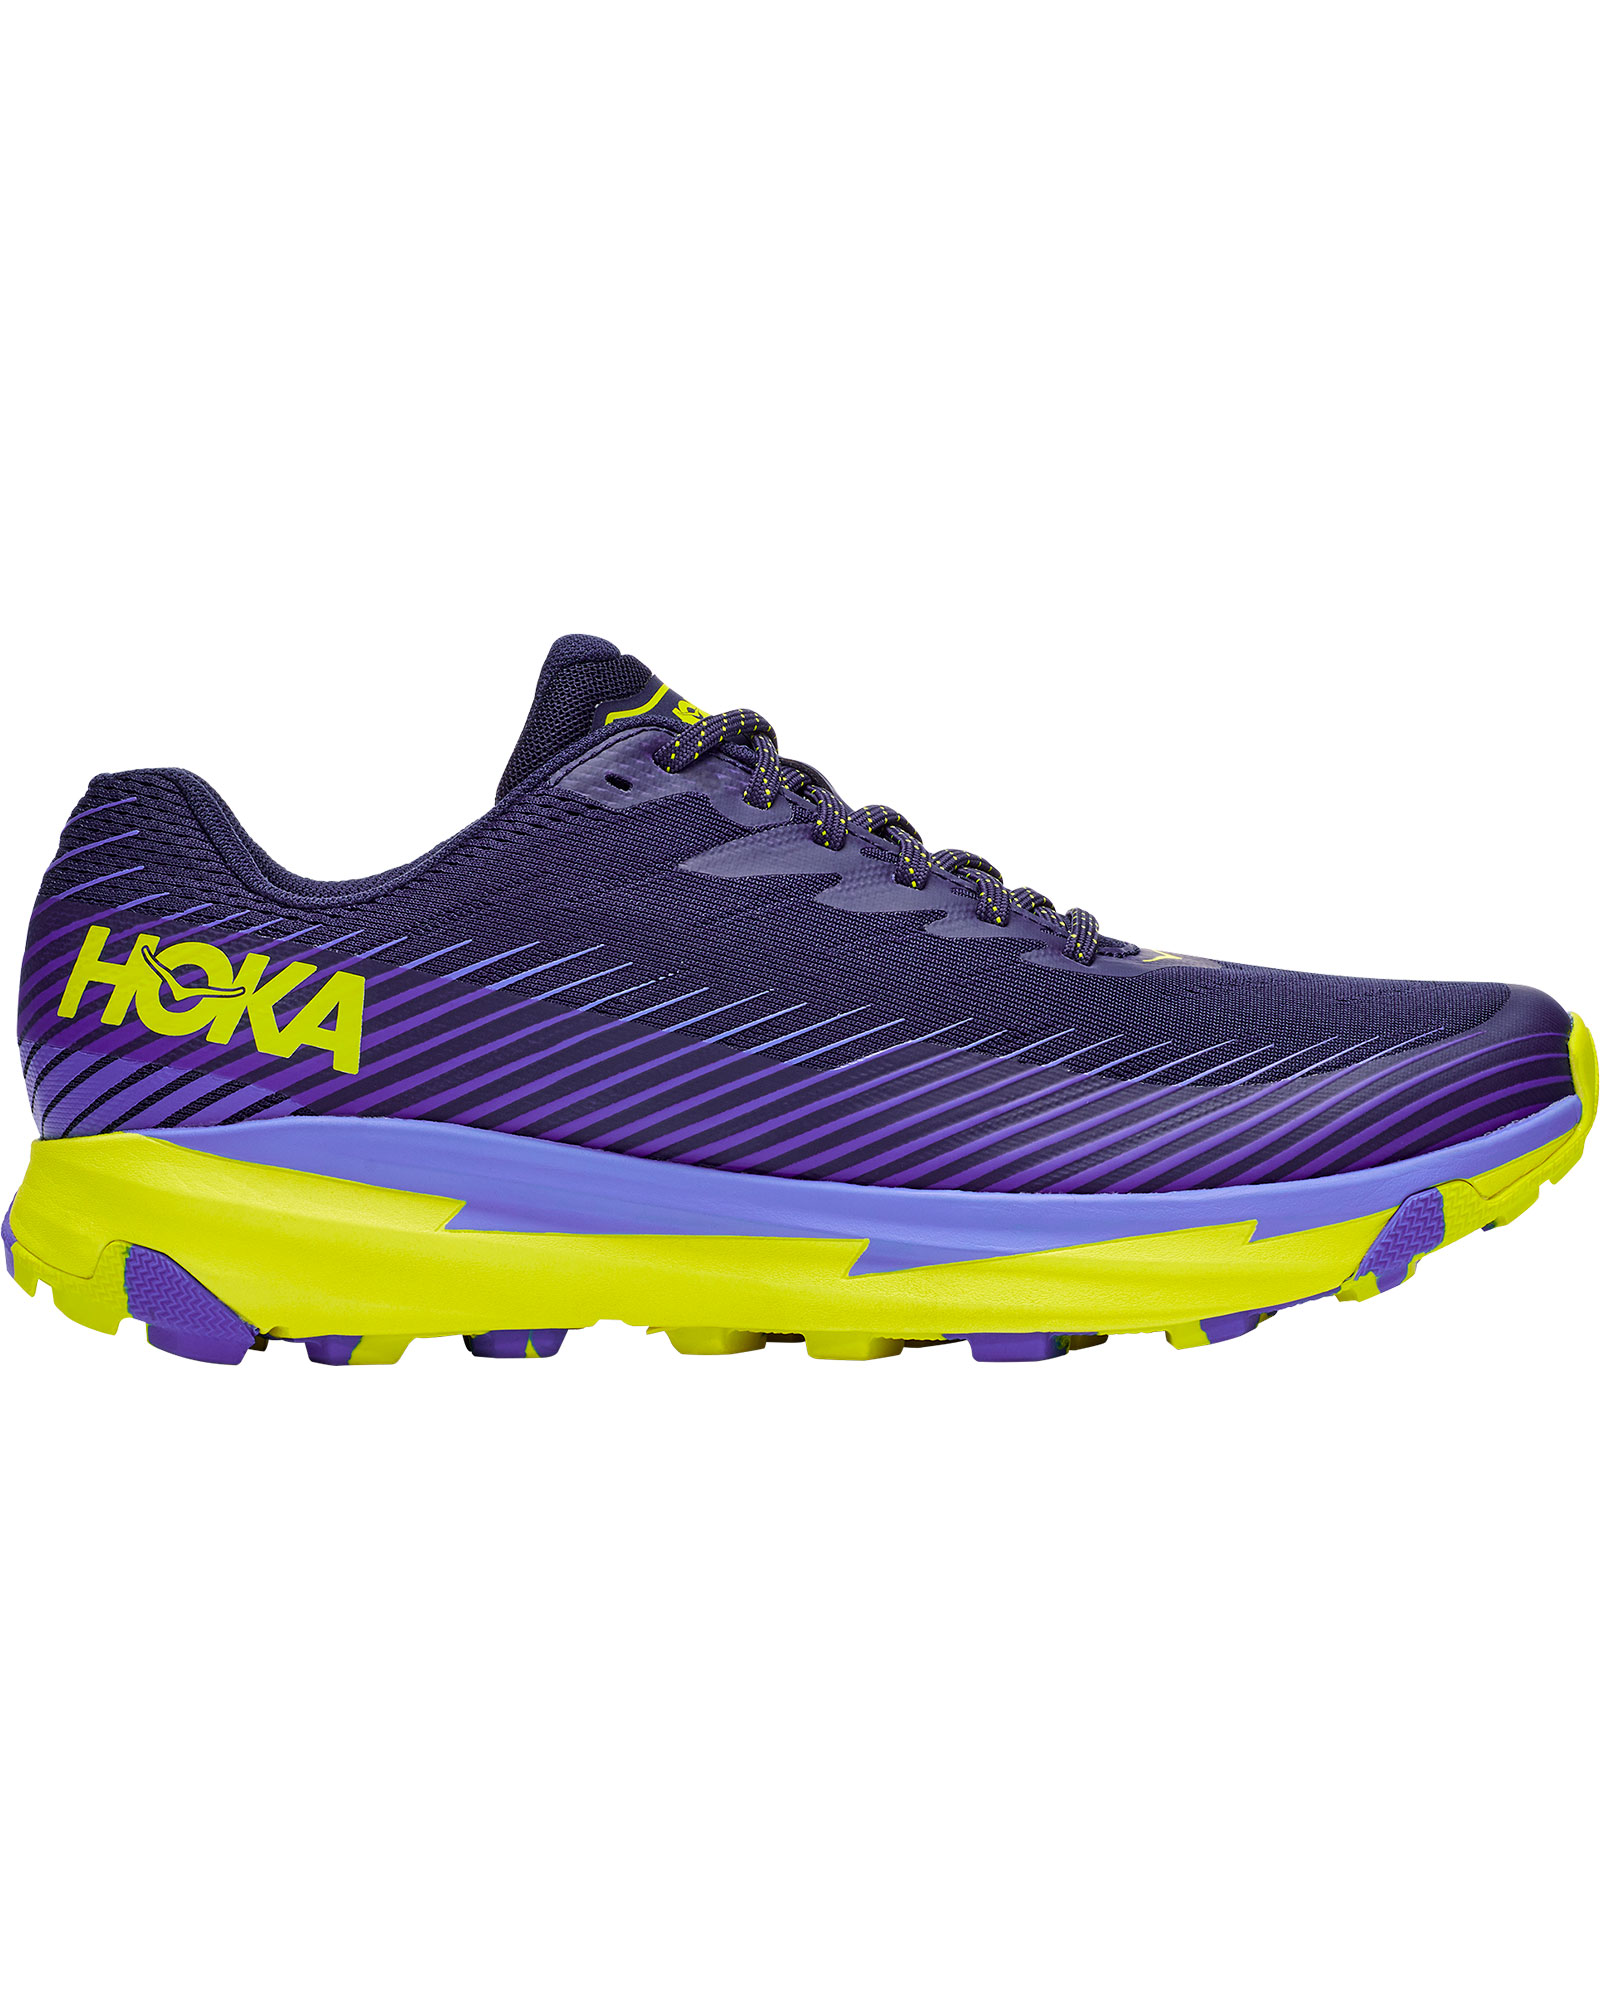 Hoka One One Men's Torrent 2 Trail Running Shoes 0